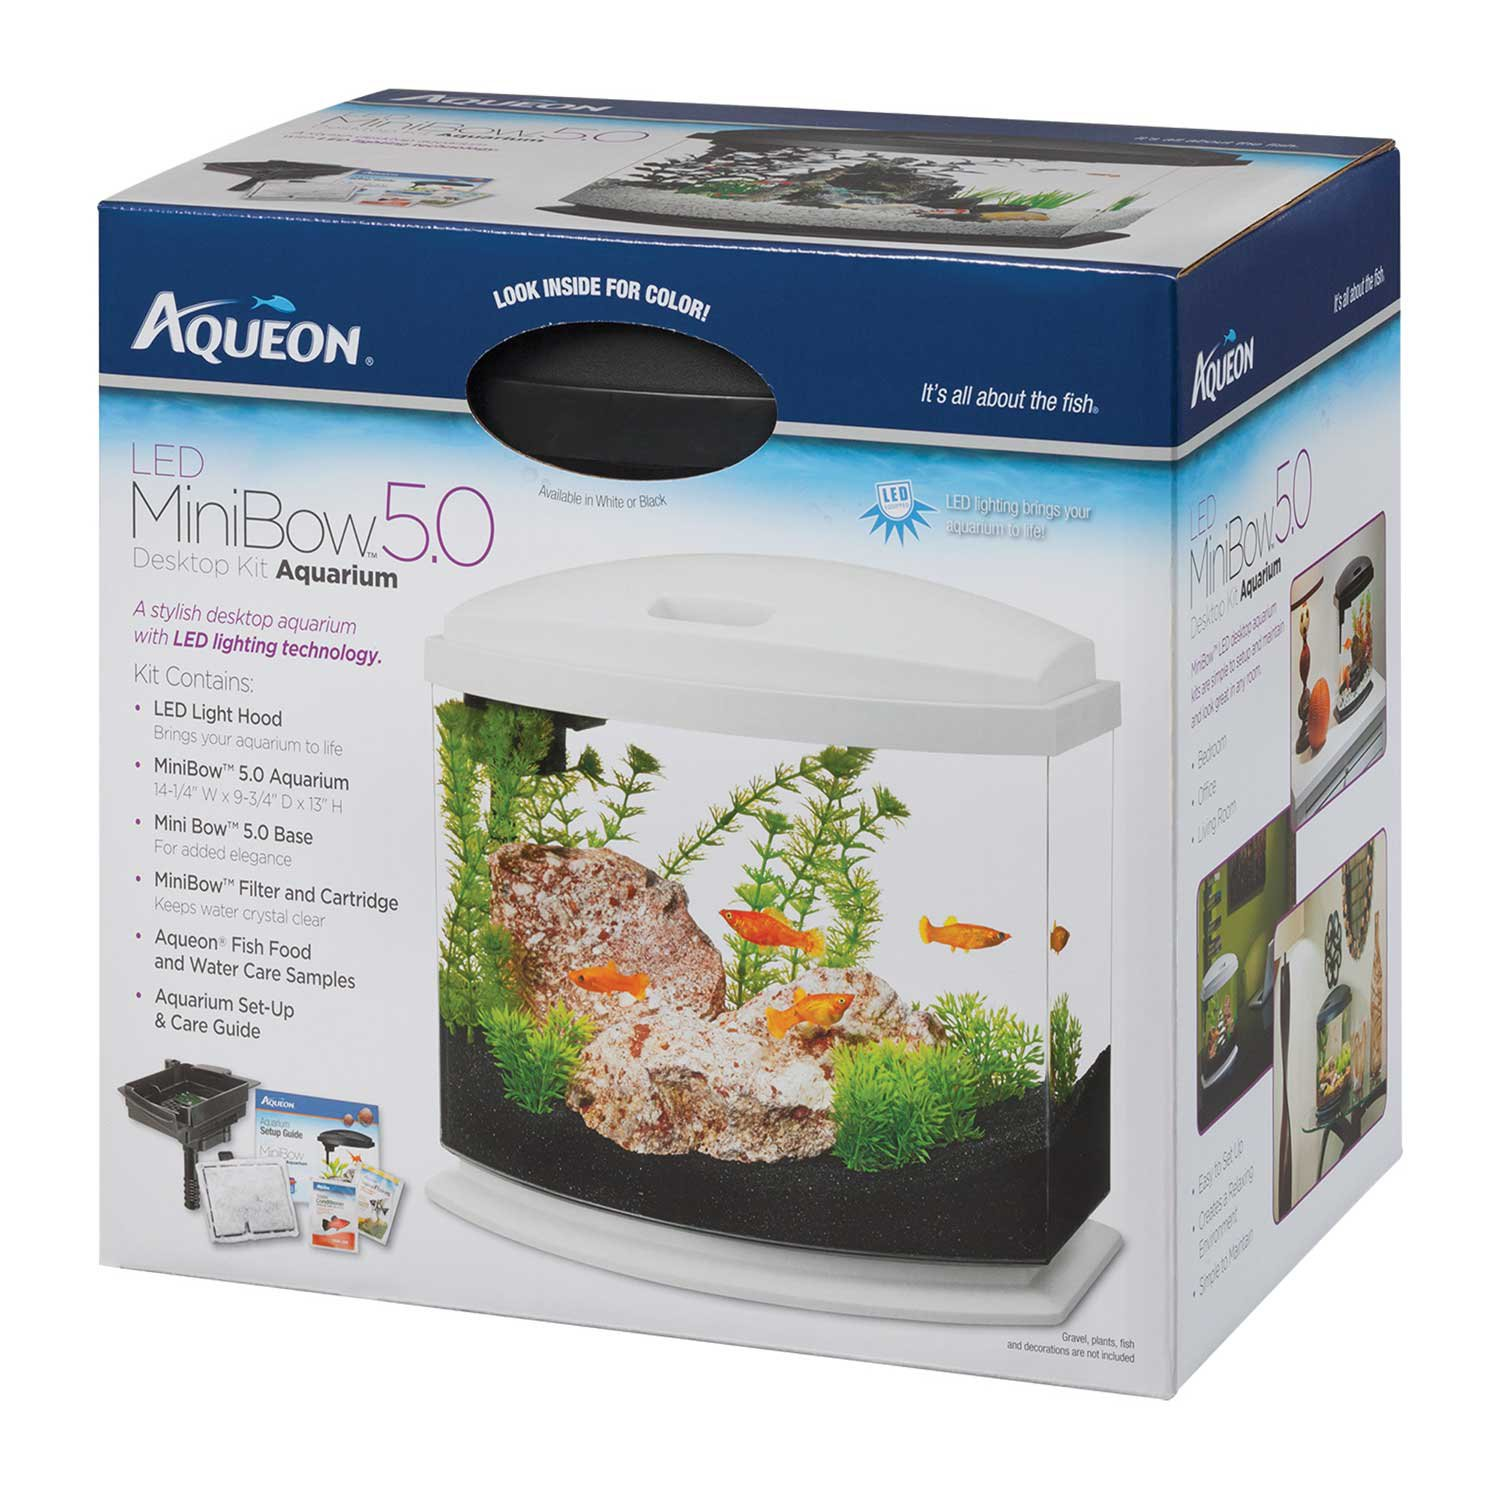 Aqueon minibow led desktop fish aquarium kit in white petco for Betta fish tanks petco